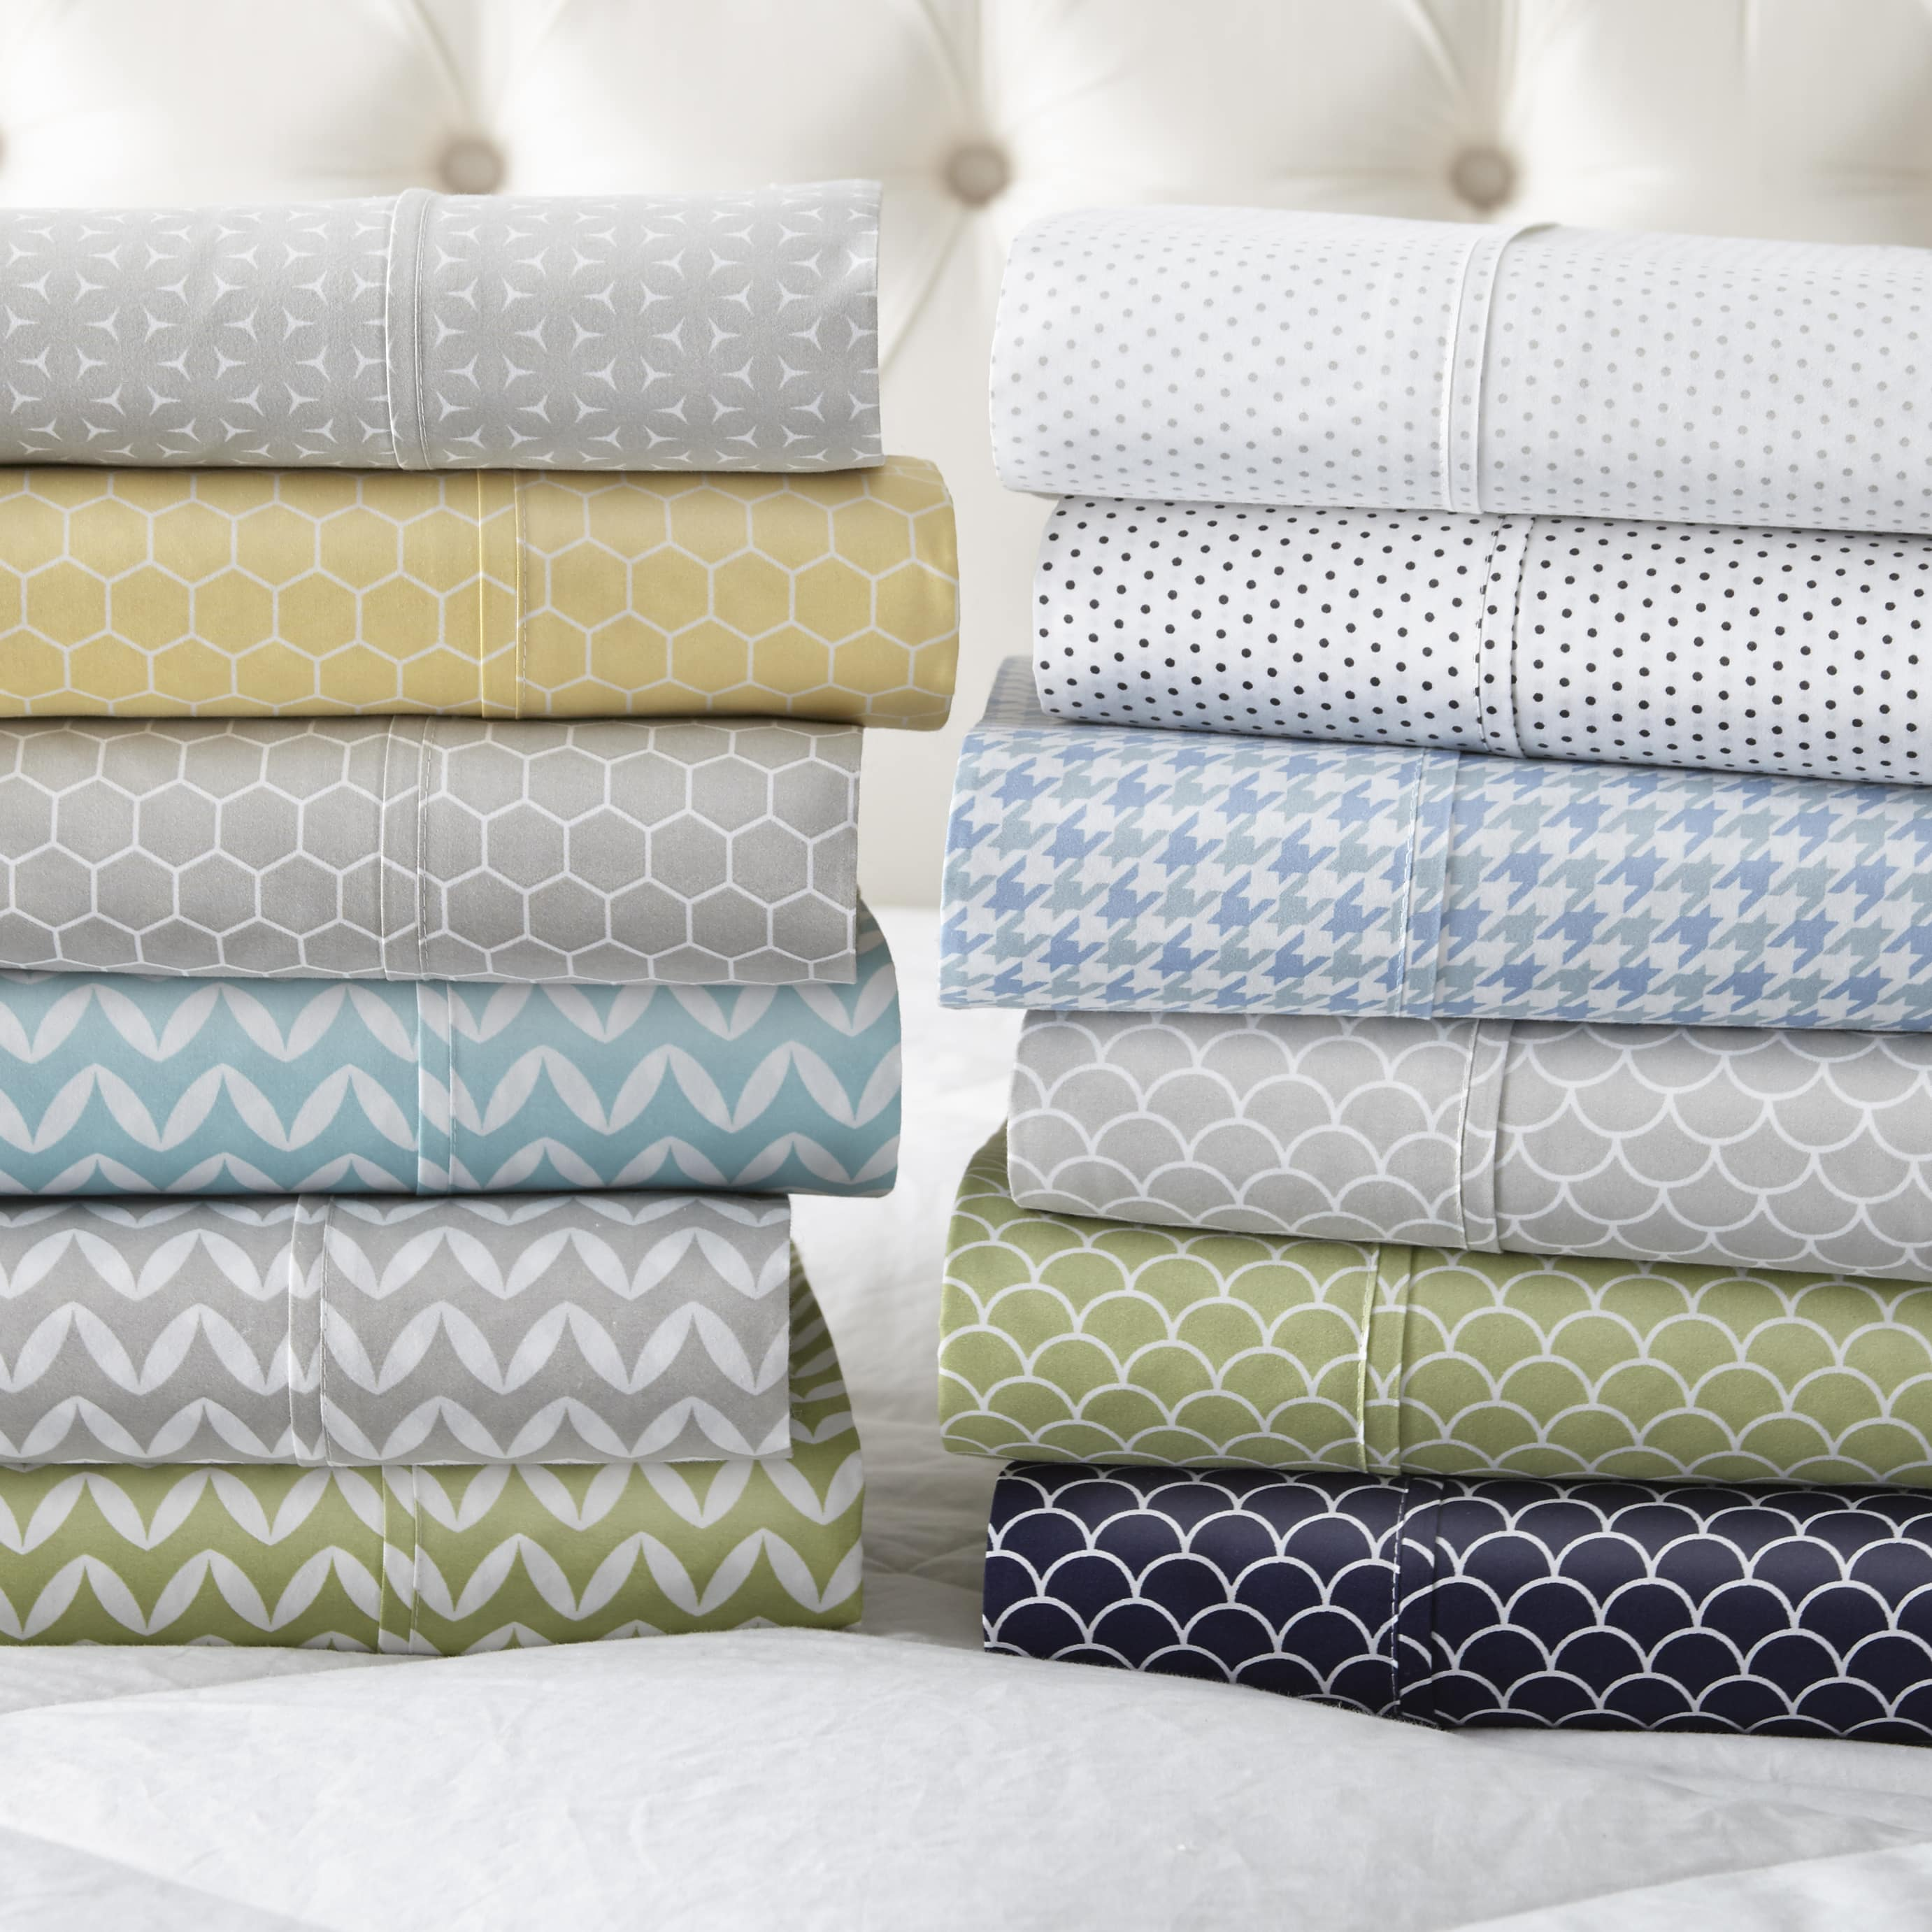 Linens & Hutch 4-Piece Extra Soft Patterned Sheet Sets: Starting at $19.50 + FS